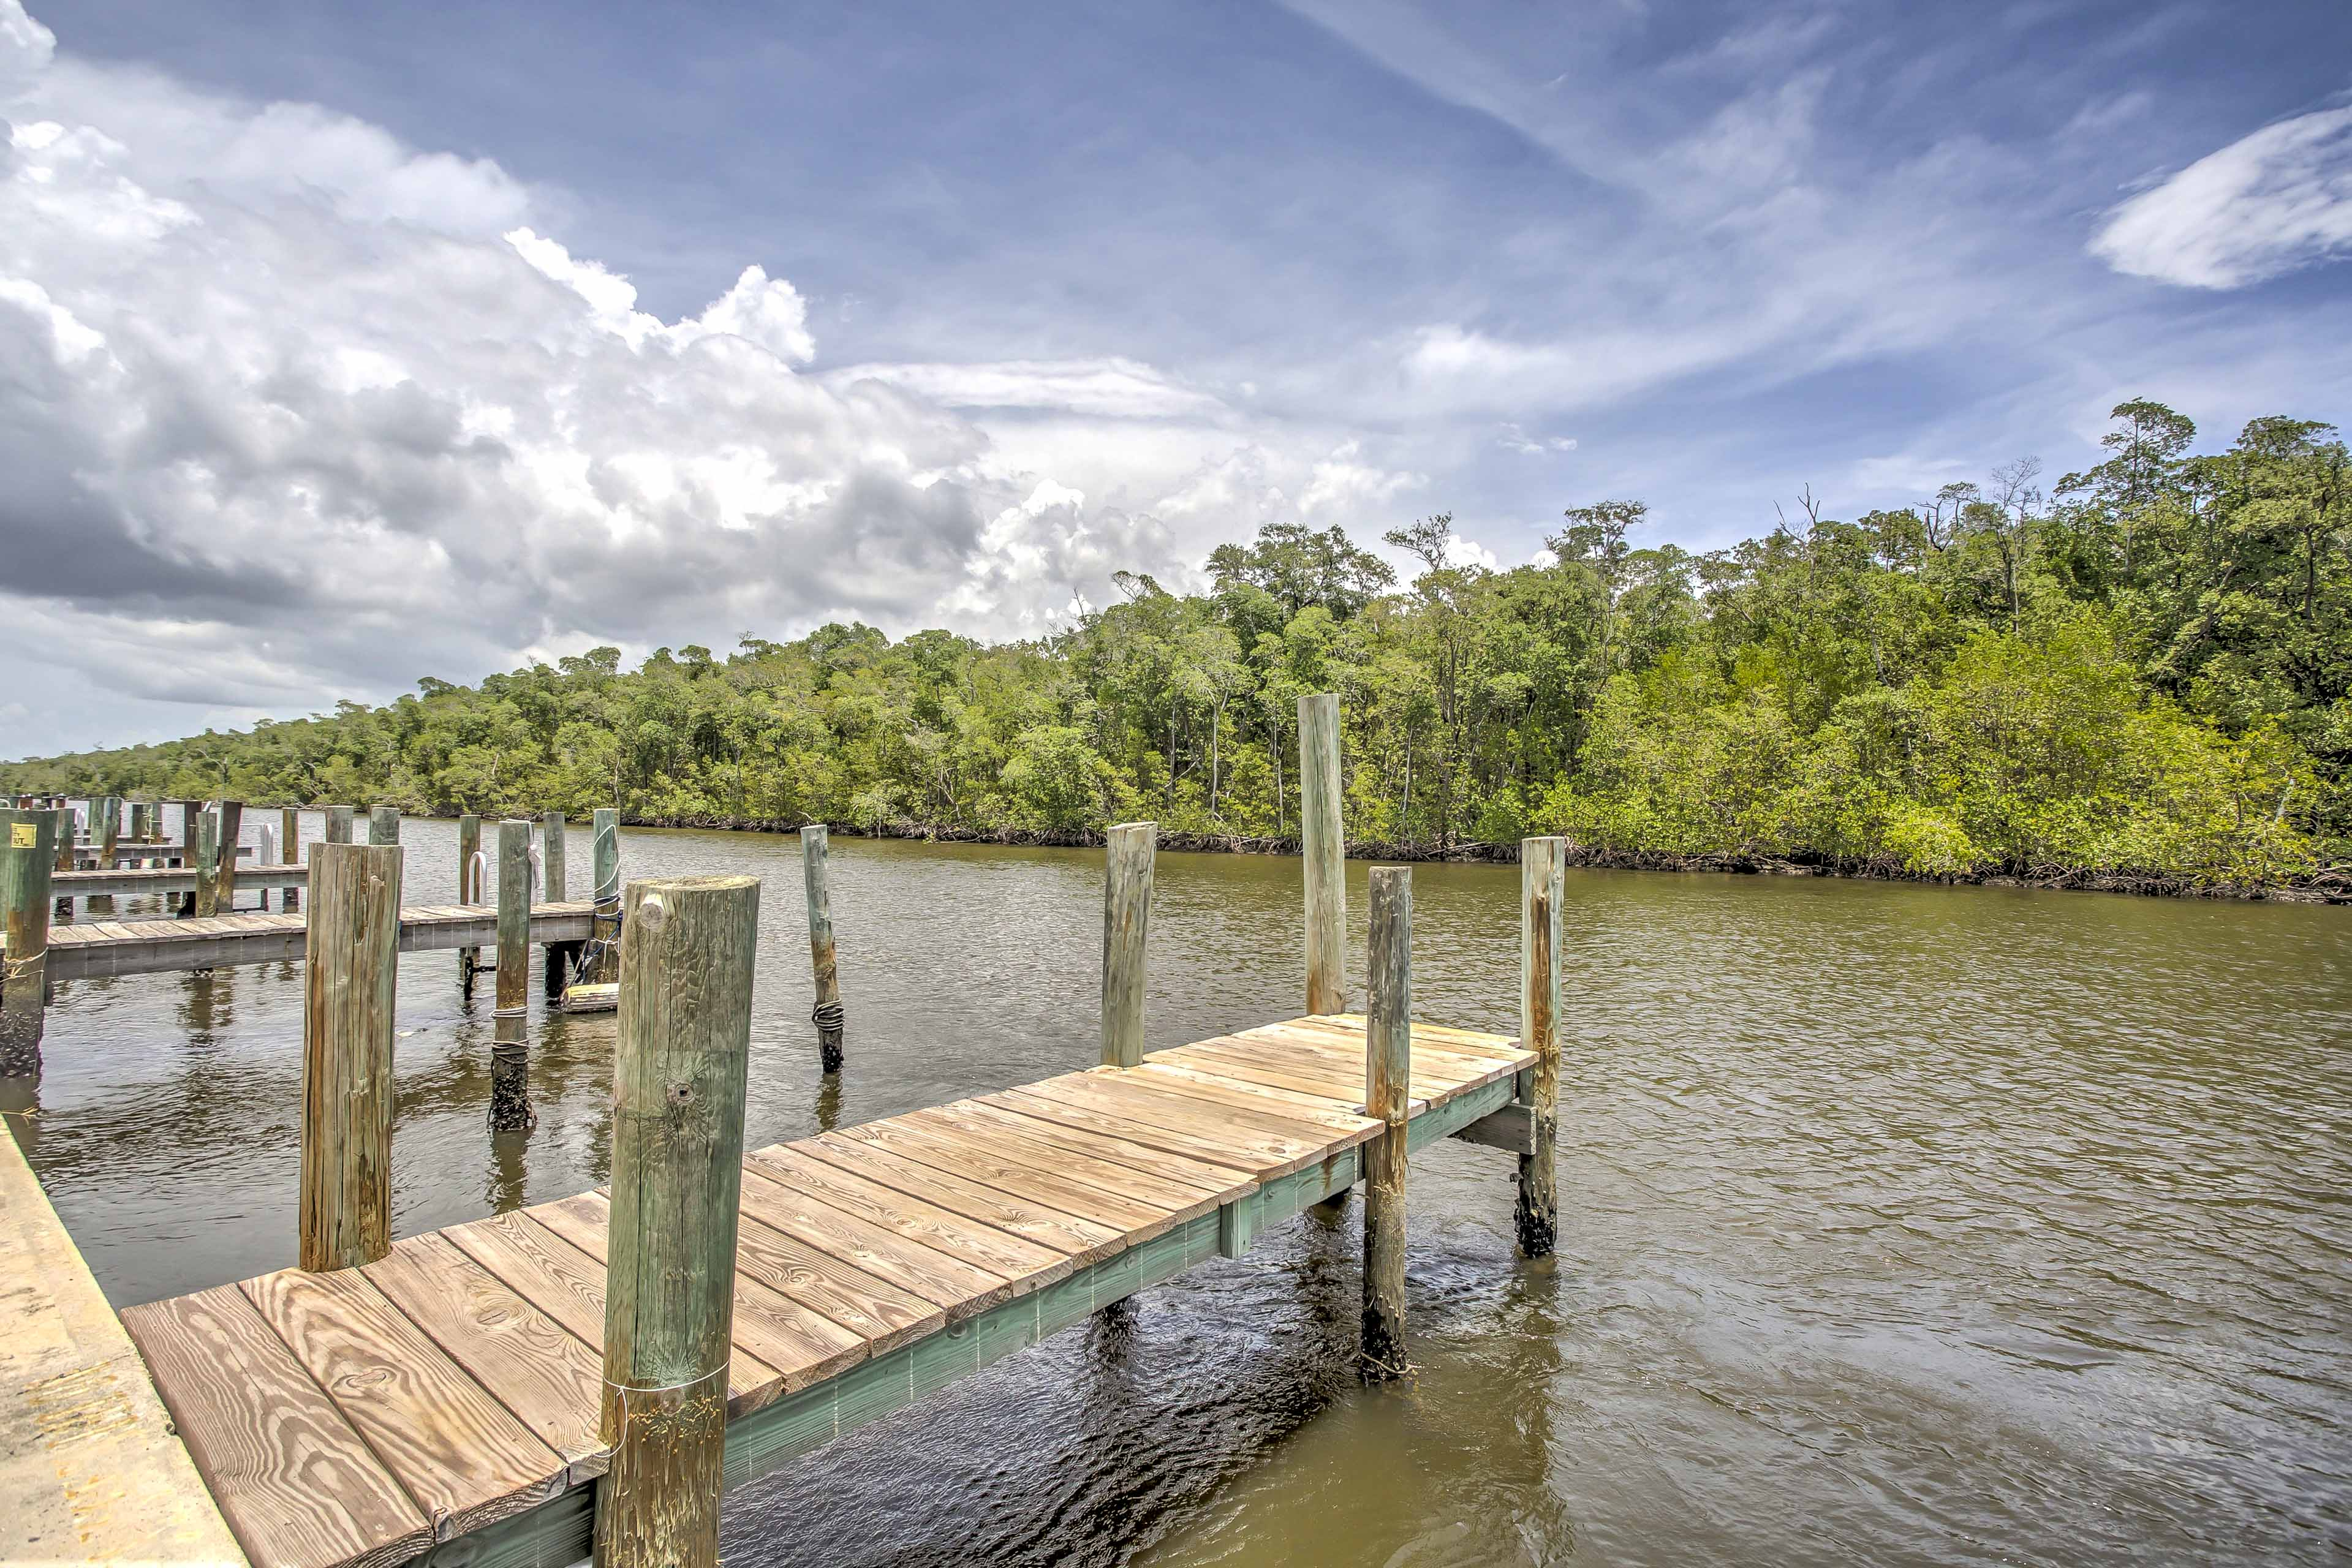 Enjoy access to the community boat slip when you book this unique vacation rental property!